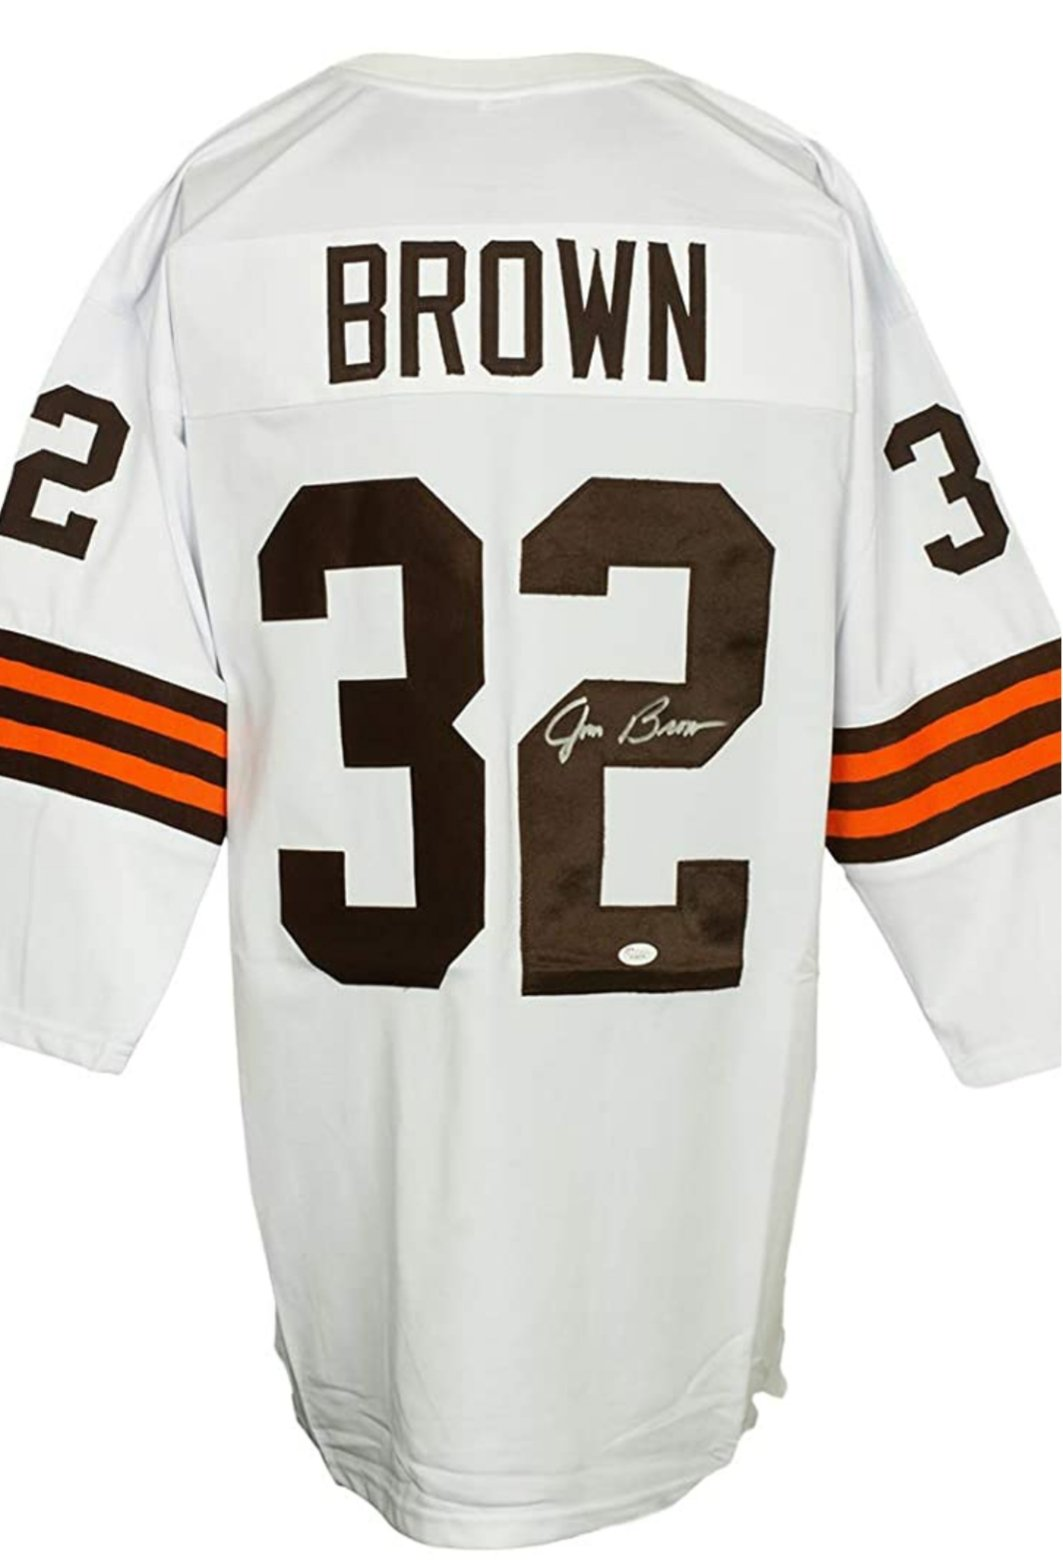 Jim Brown signed white Cleveland Browns style Jersey (JSA COA)